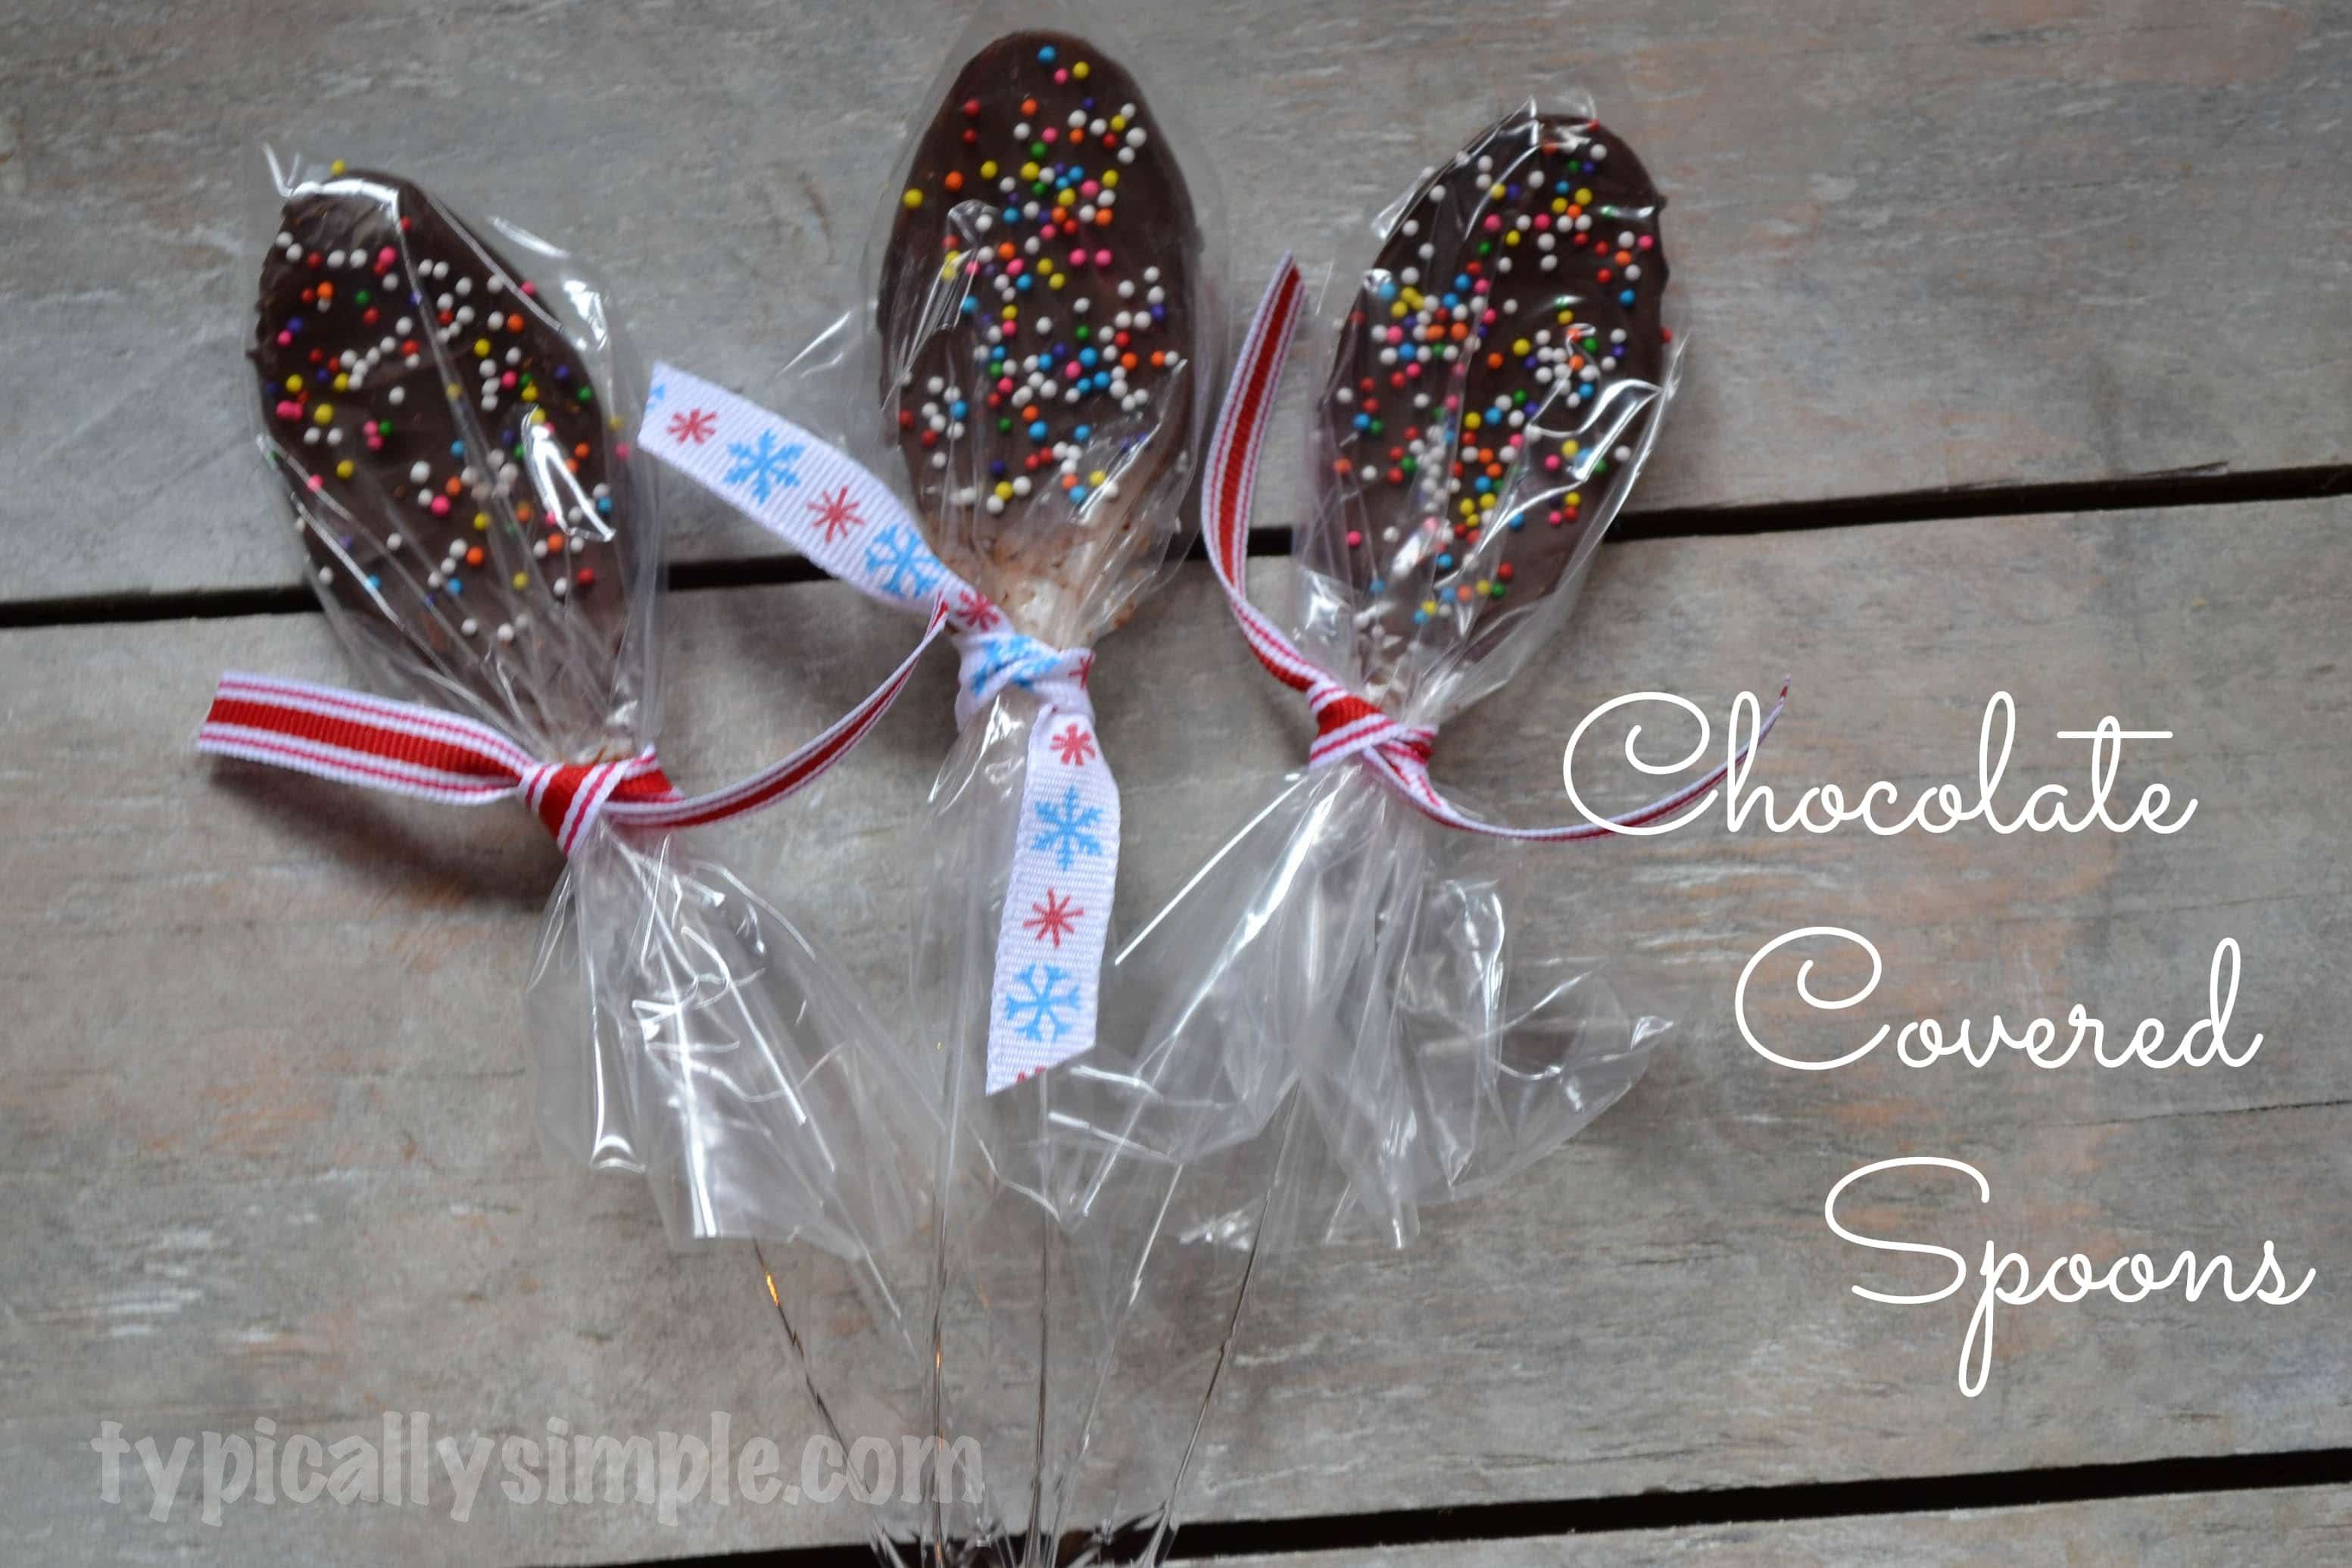 Chocolate Covered Spoons Typically Simple